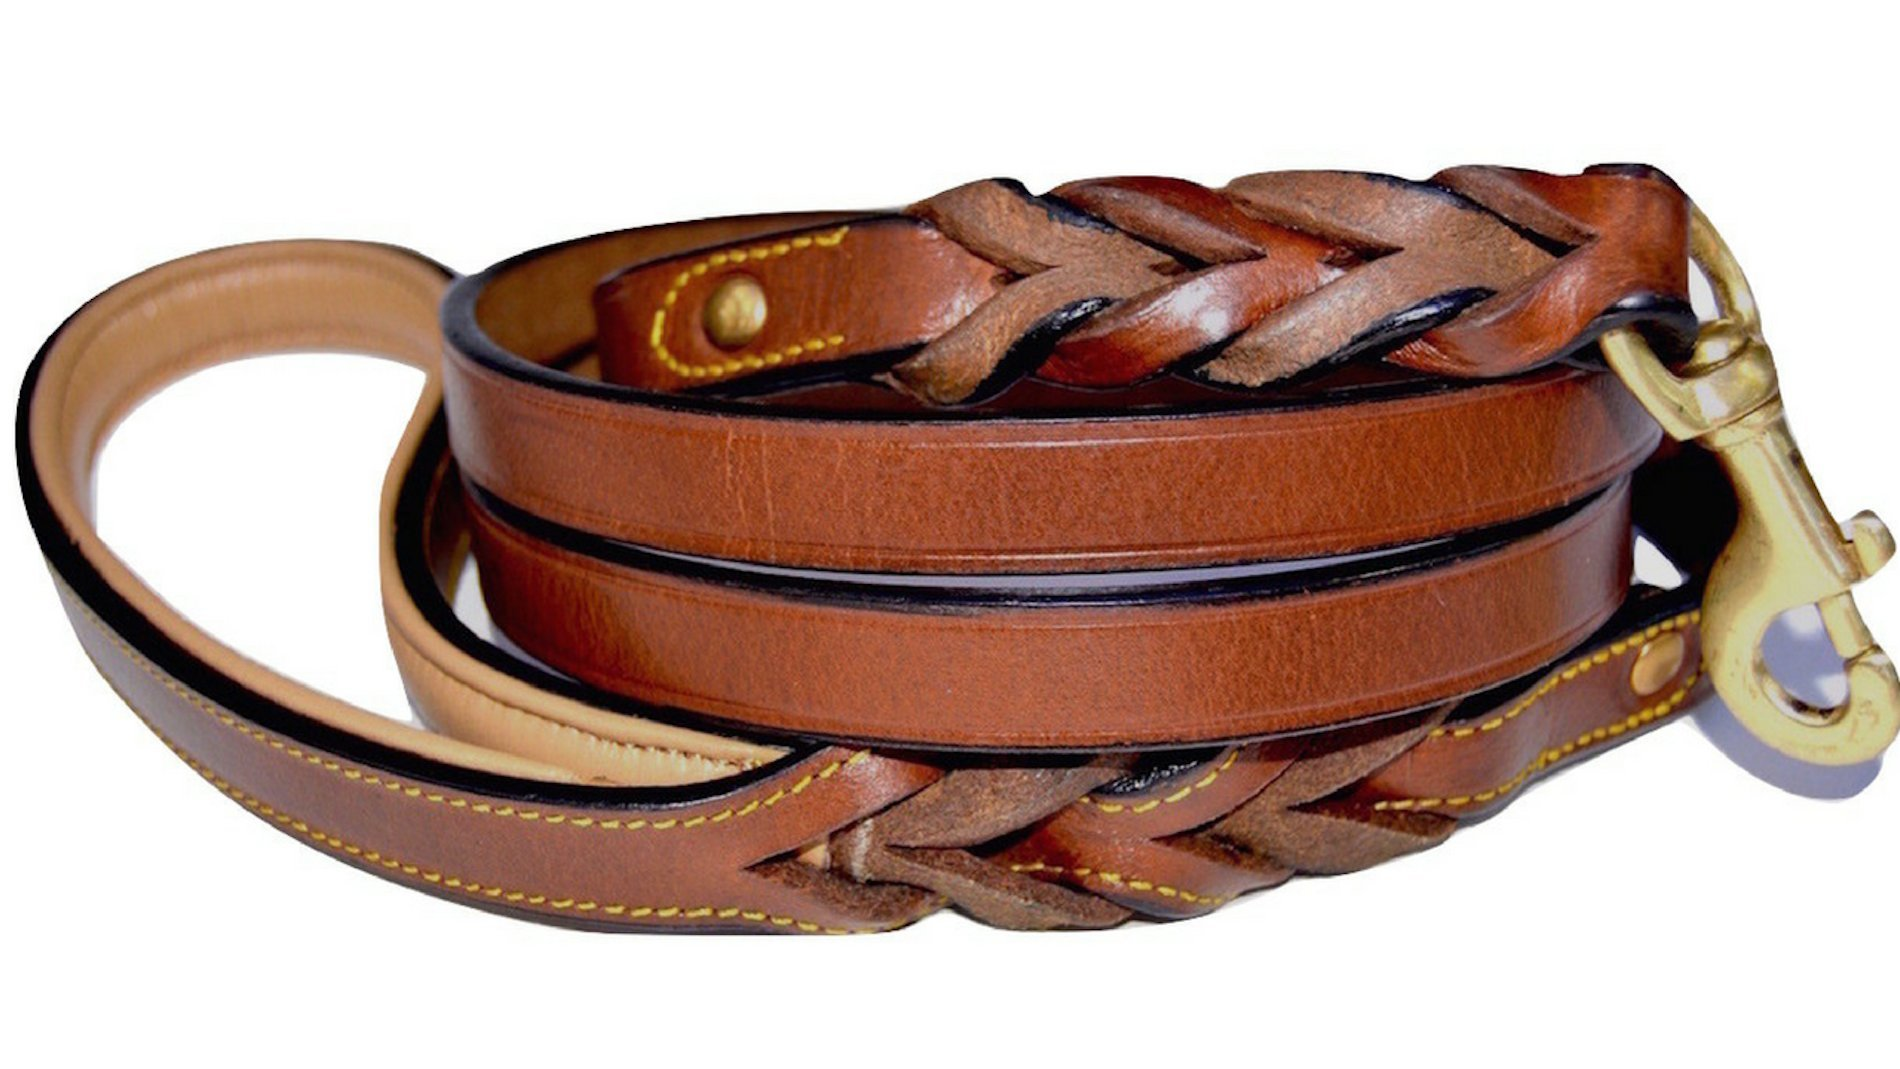 Soft Touch Collars Leather Braided Dog Leash, Brown 6ft x 3/4 Inch , Naturally Tanned 6 Foot Full Grain Leather Lead